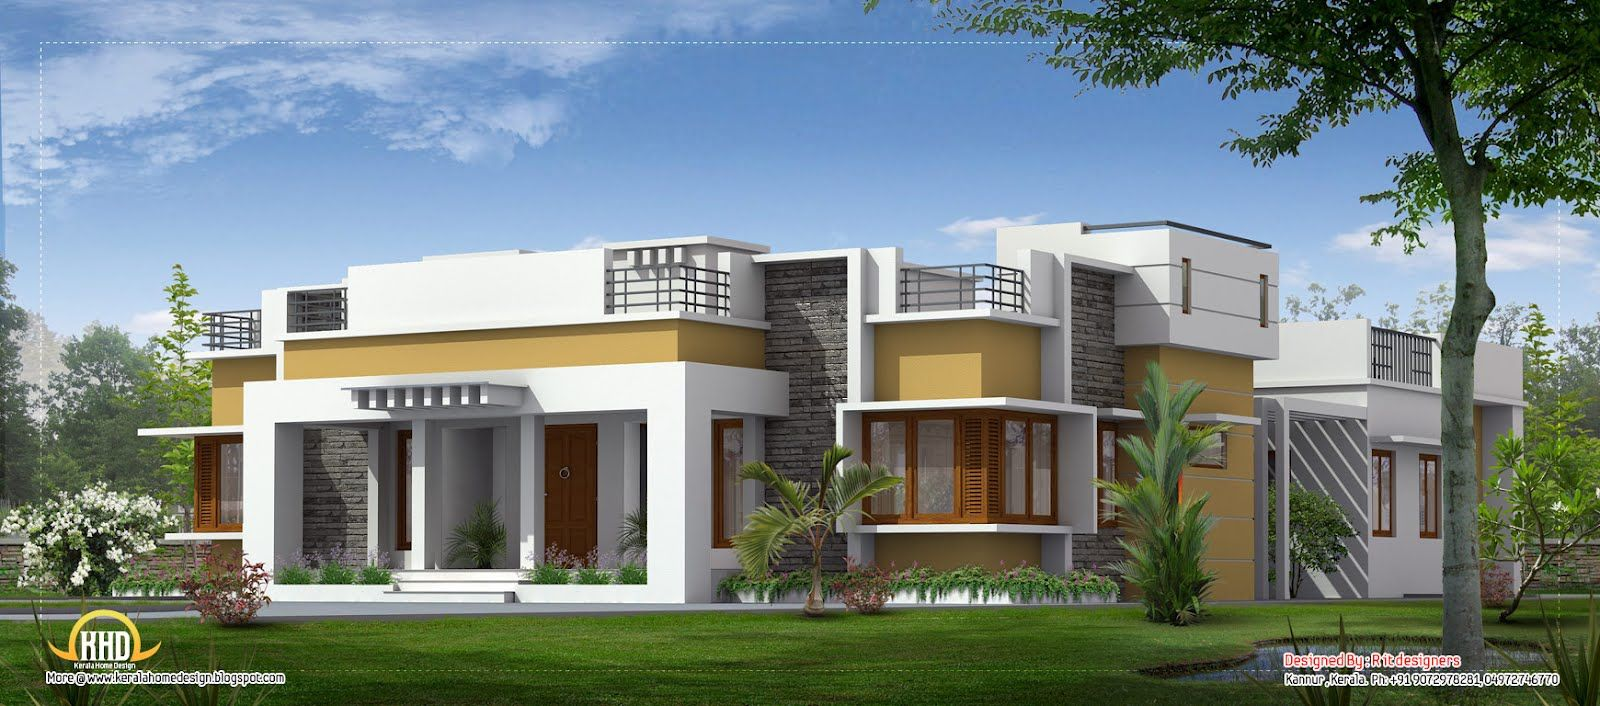 Beautiful Single Floor Home 2910 Sq Ft Design Drawing House